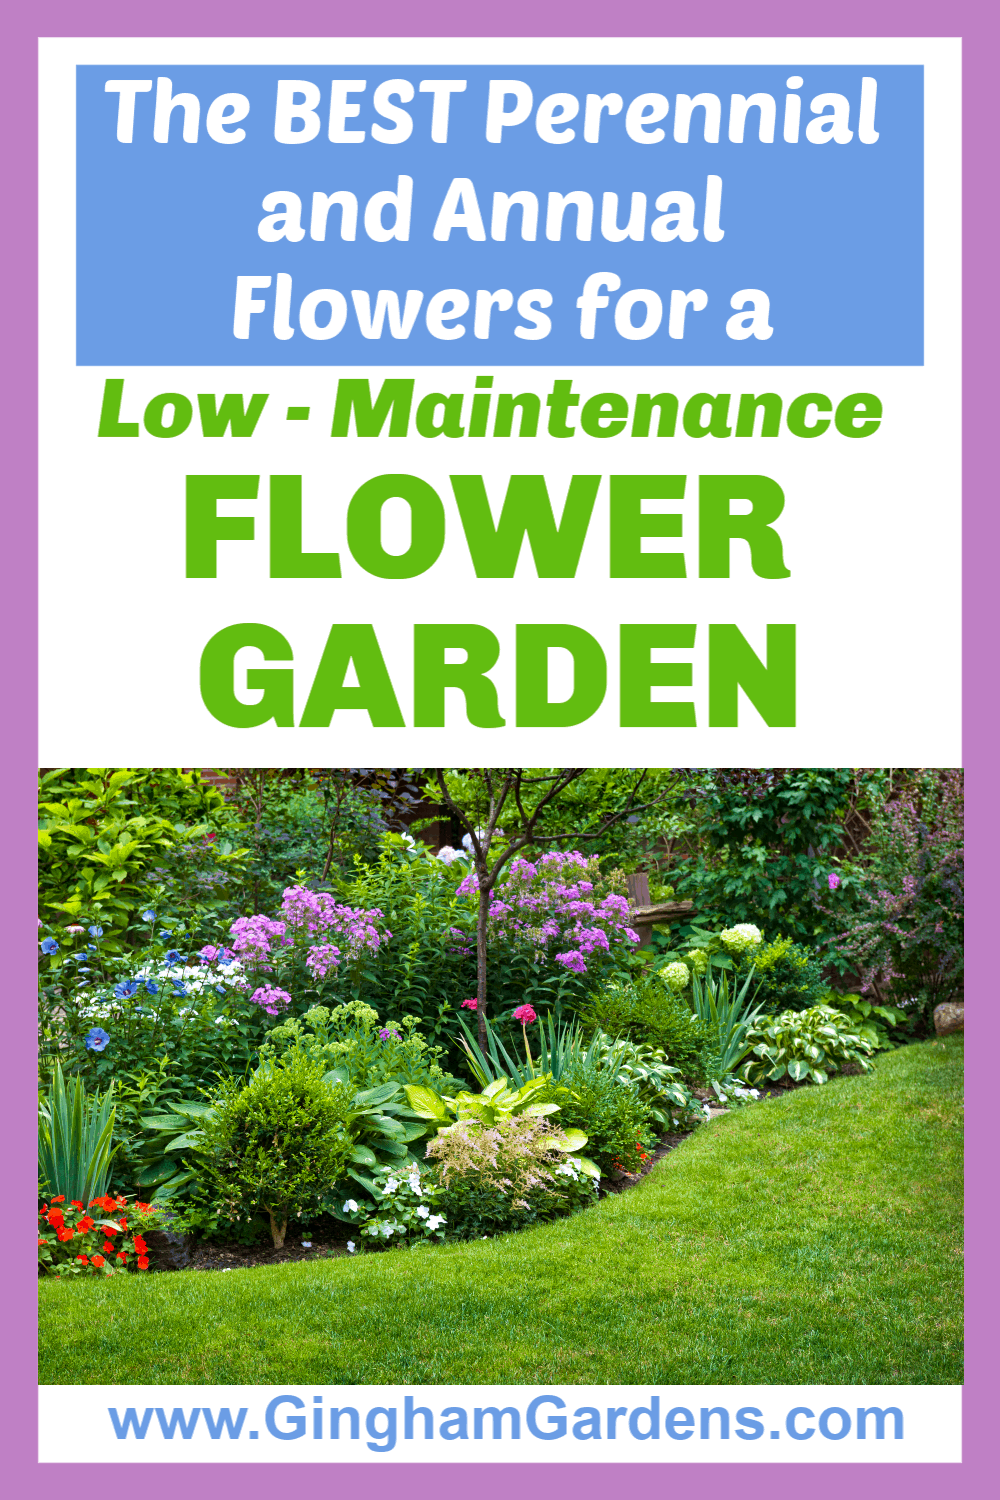 Image of a Flower Garden with text overlay - the best perennial and annual flowers for a low maintenance flower garden